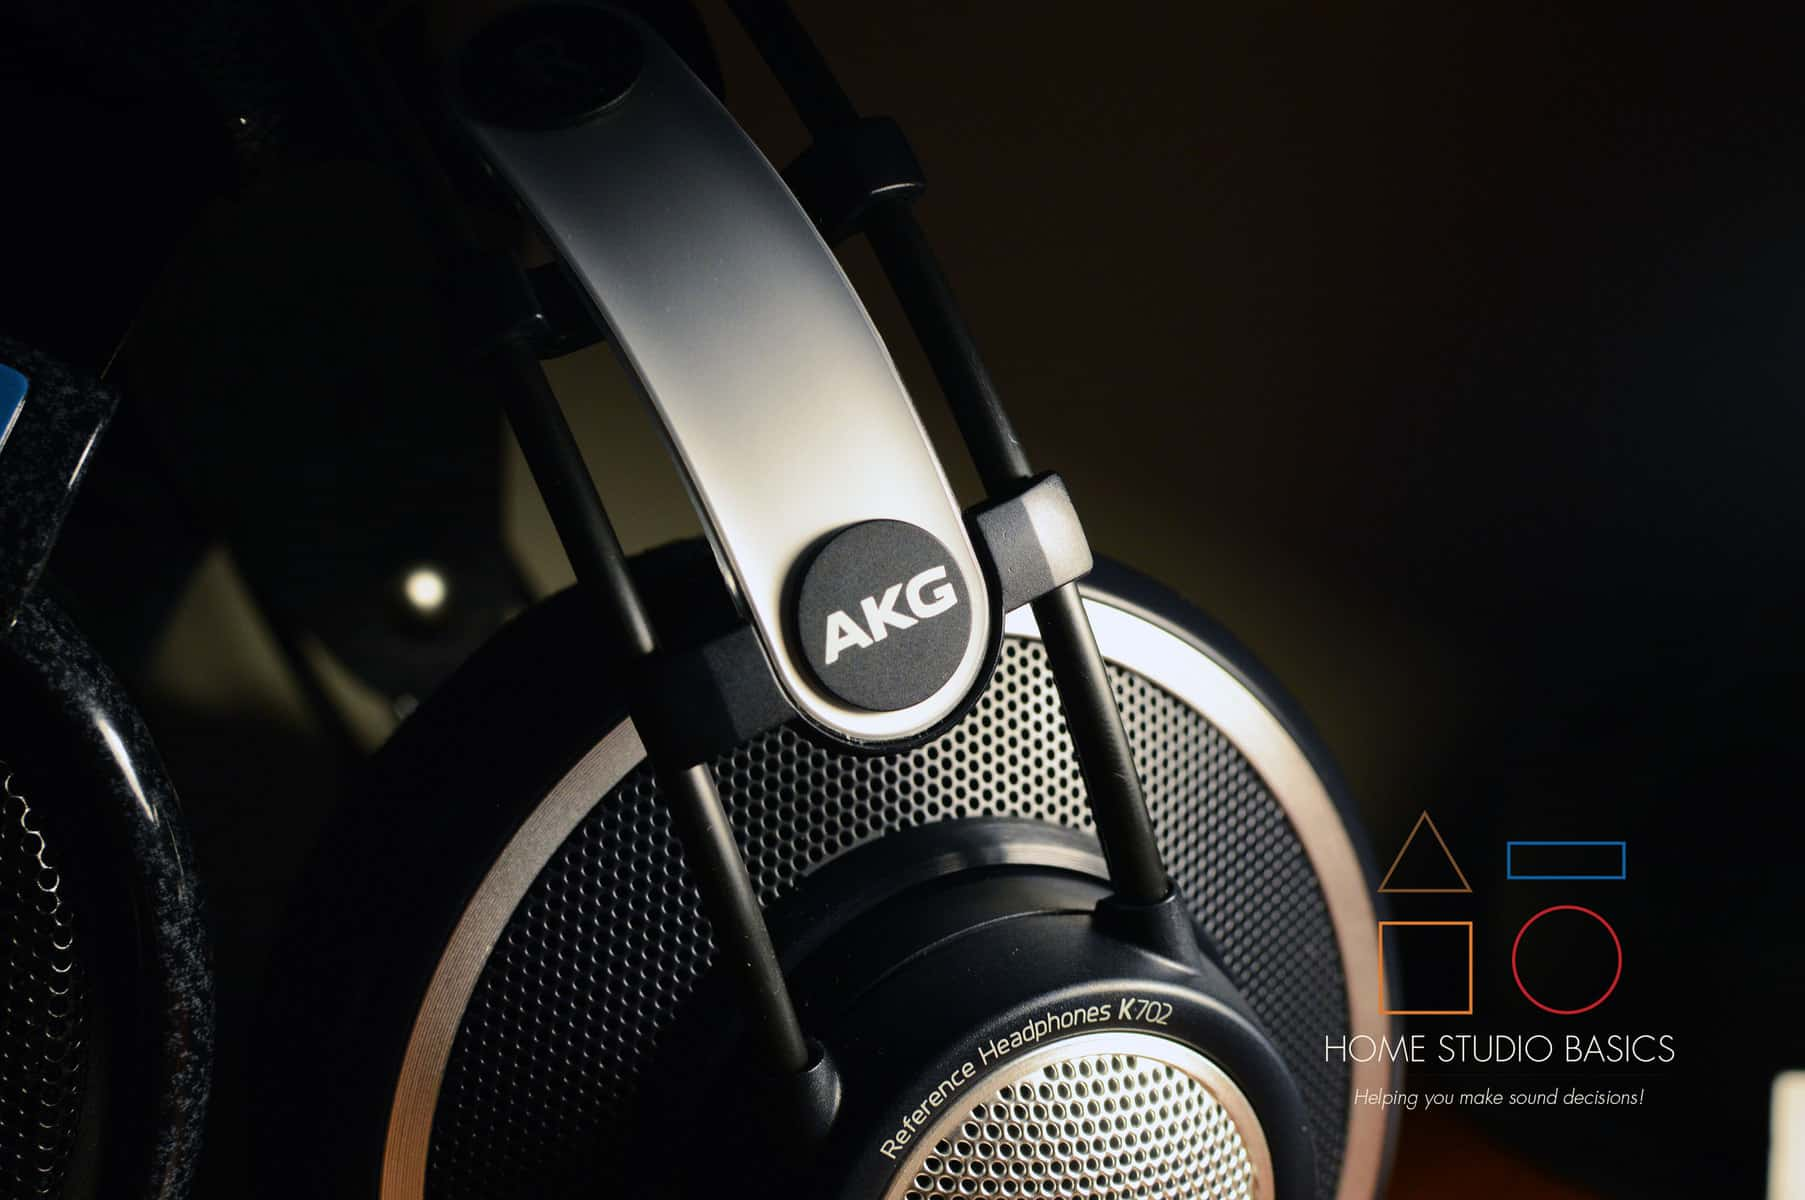 AKG K702 vs. Sennheiser HD600